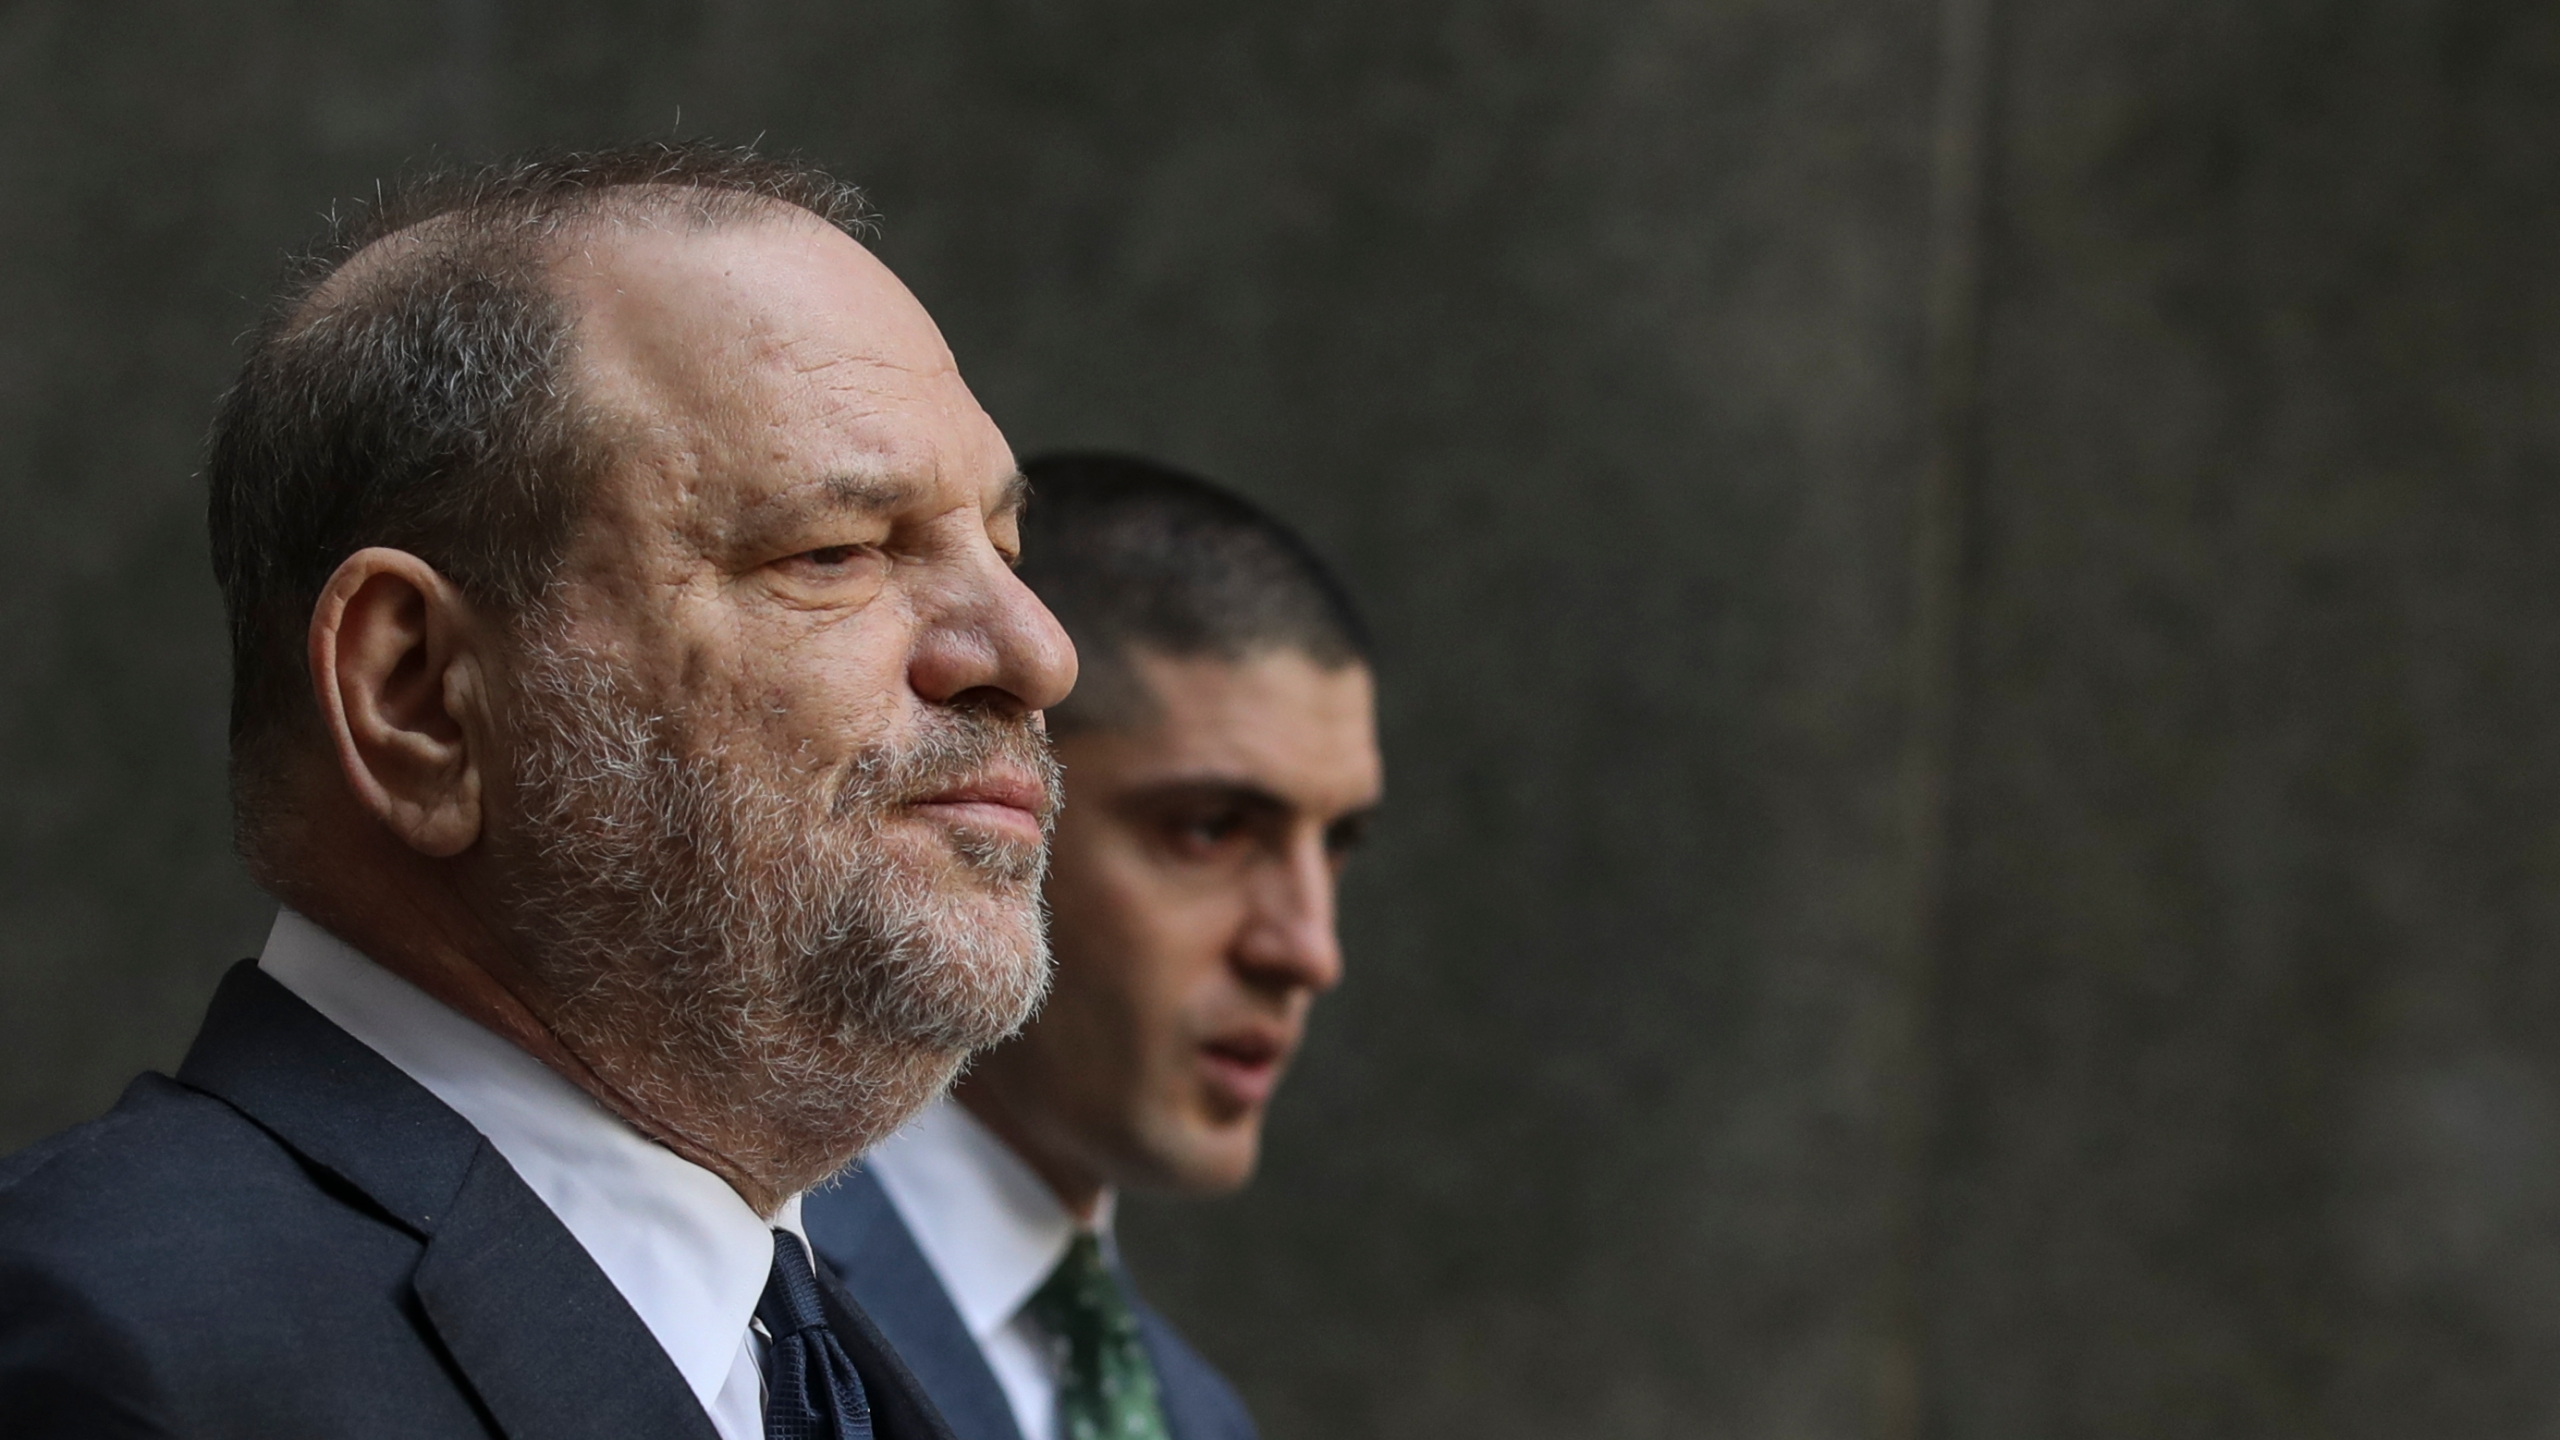 Harvey Weinstein exits a court hearing at New York Criminal Court on Dec. 20, 2018 in New York City. (Credit: Drew Angerer/Getty Images)